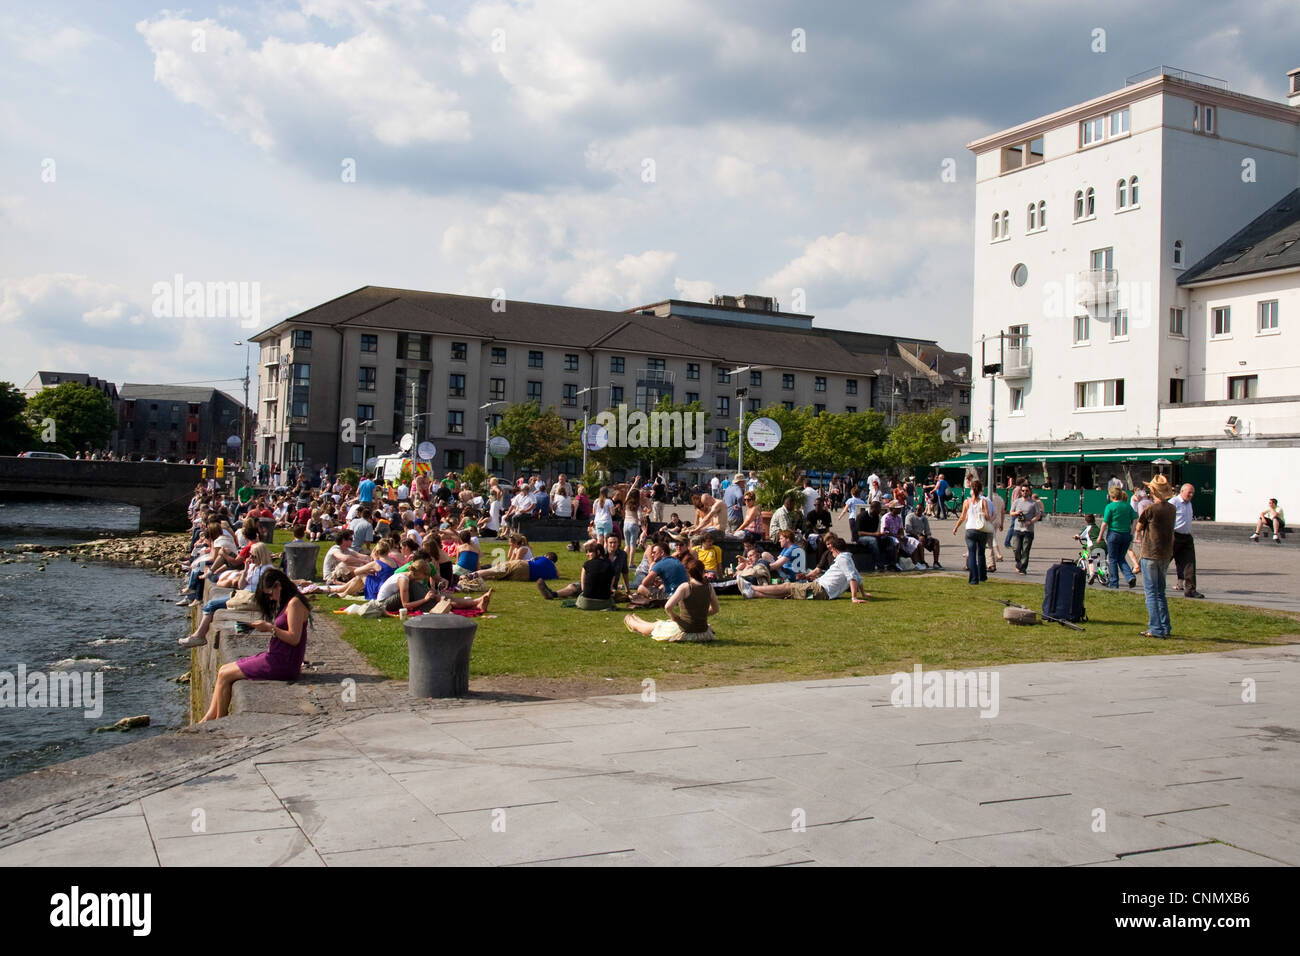 Crowds enjoying the sun at the Spanish Arch in Galway - Stock Image